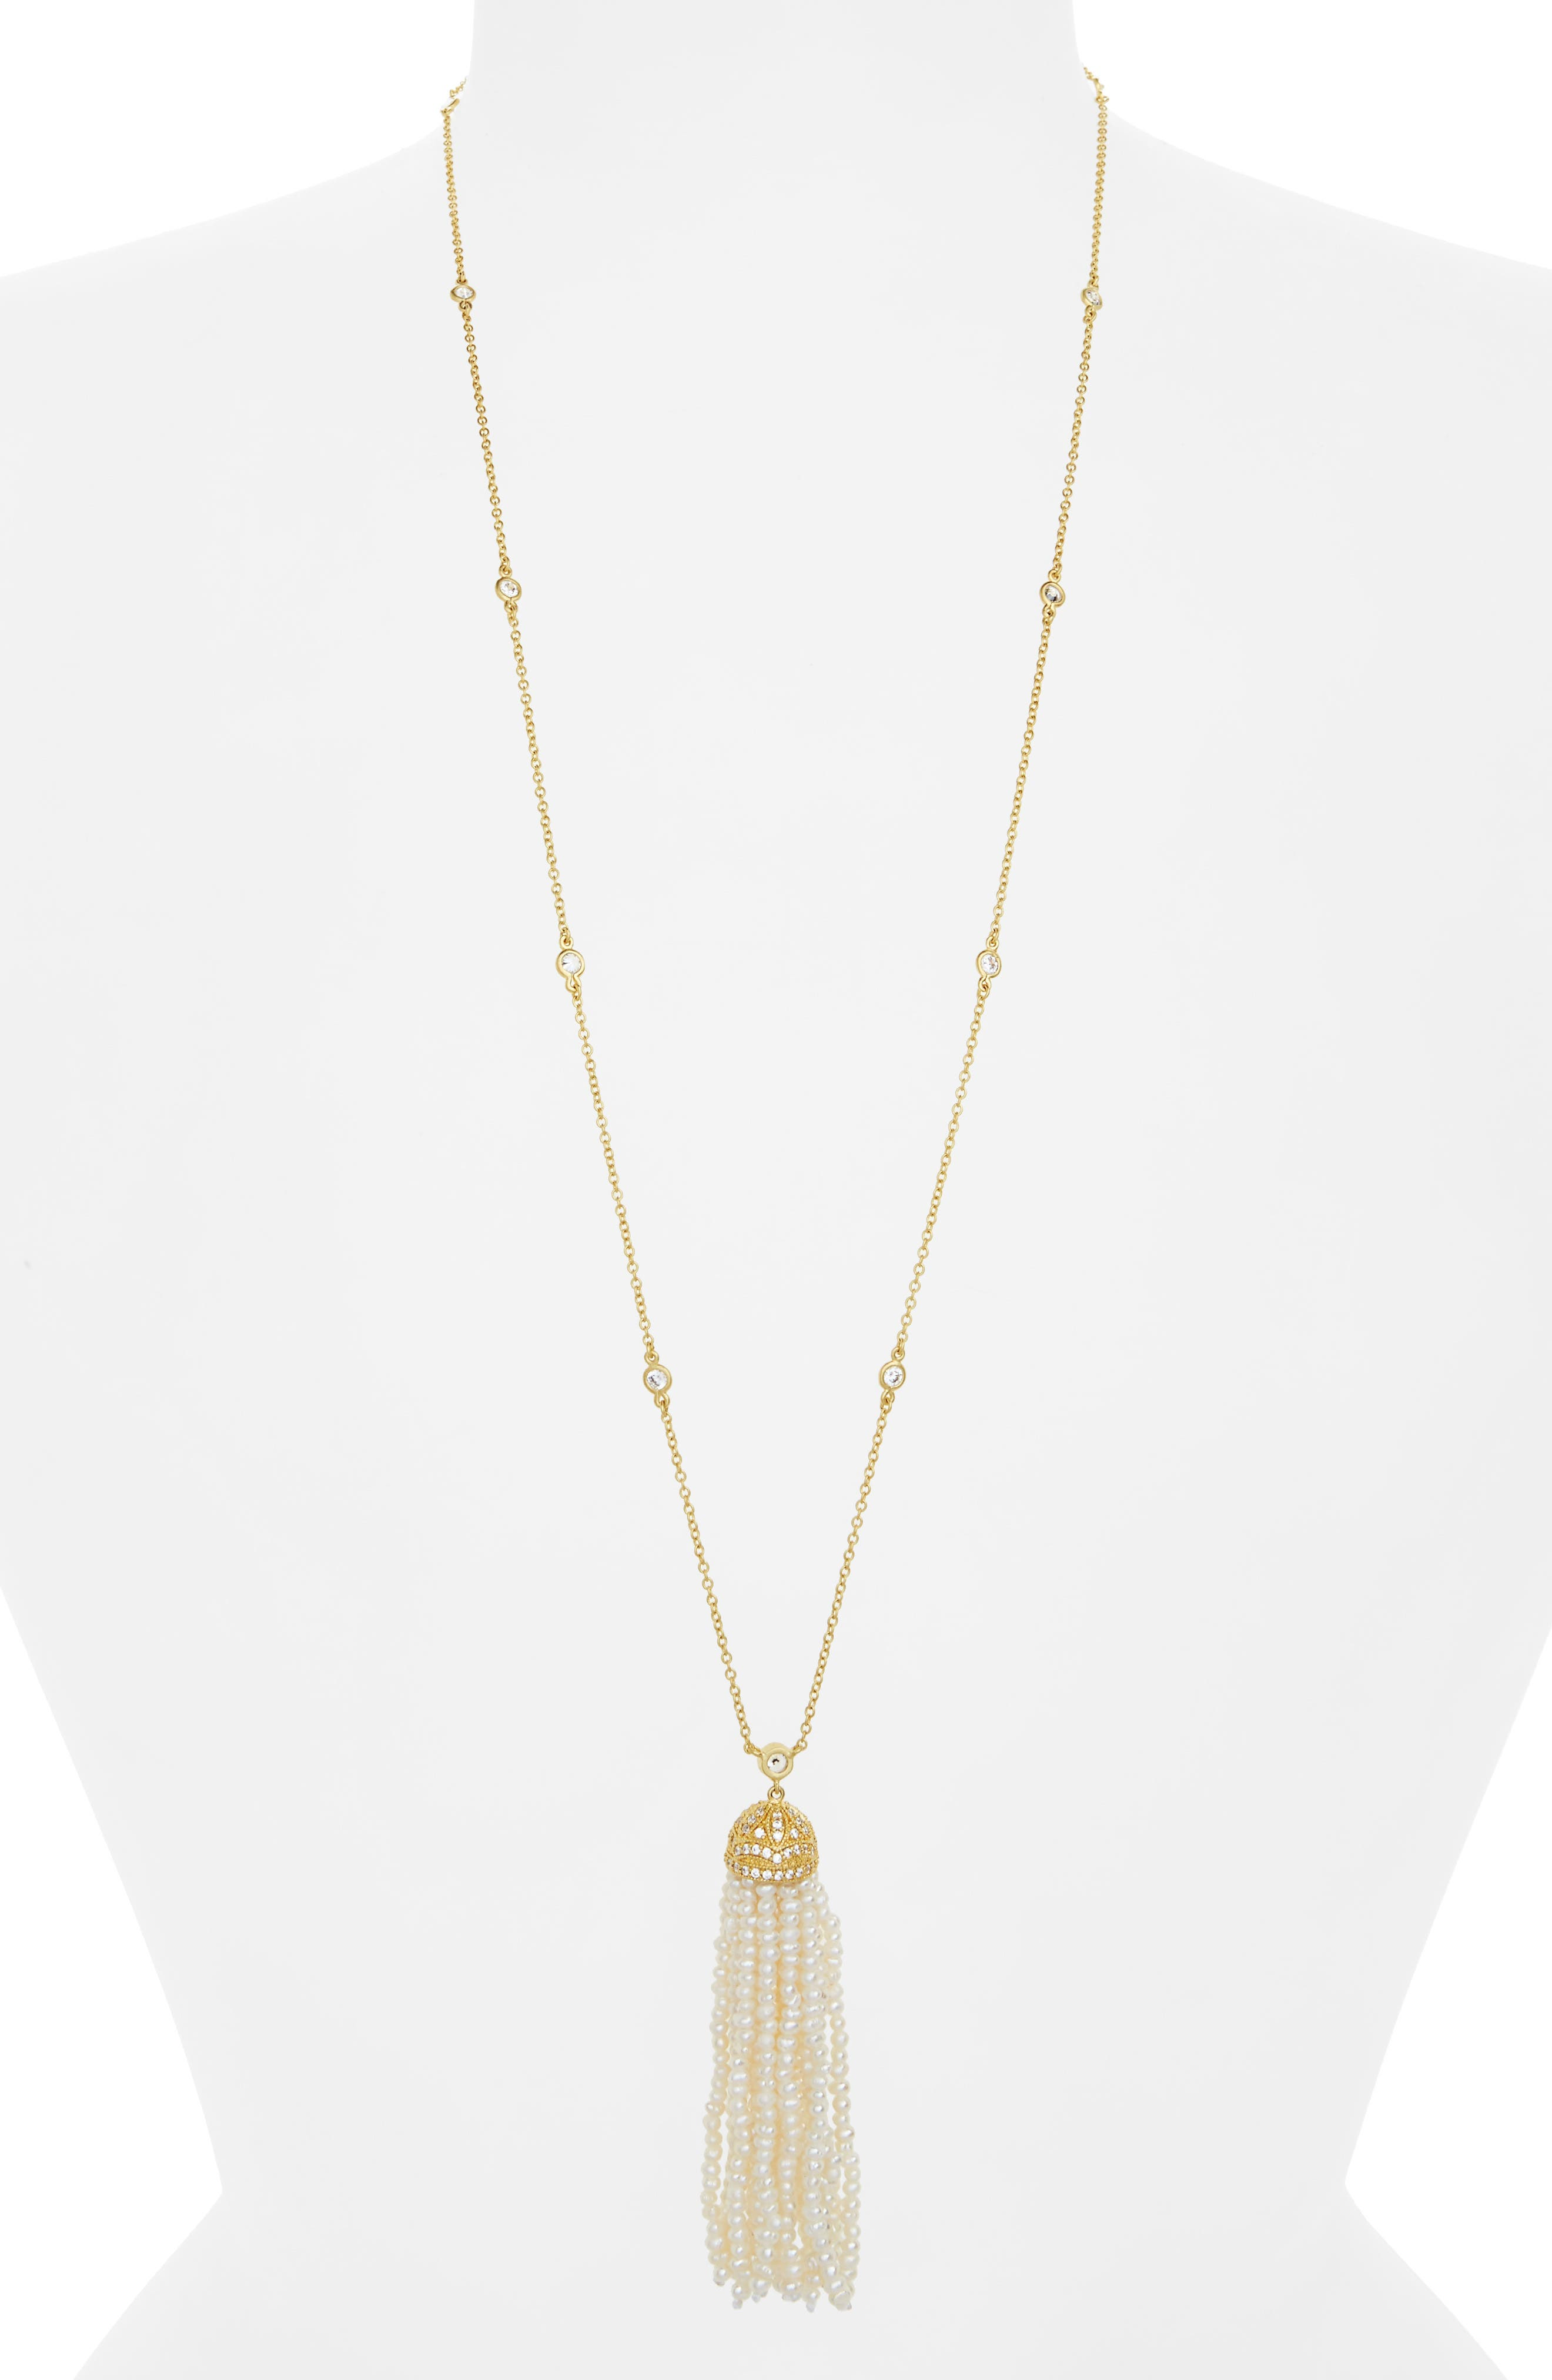 Audrey Tassel Pendant Pearl Necklace,                         Main,                         color, Gold/ Pearl